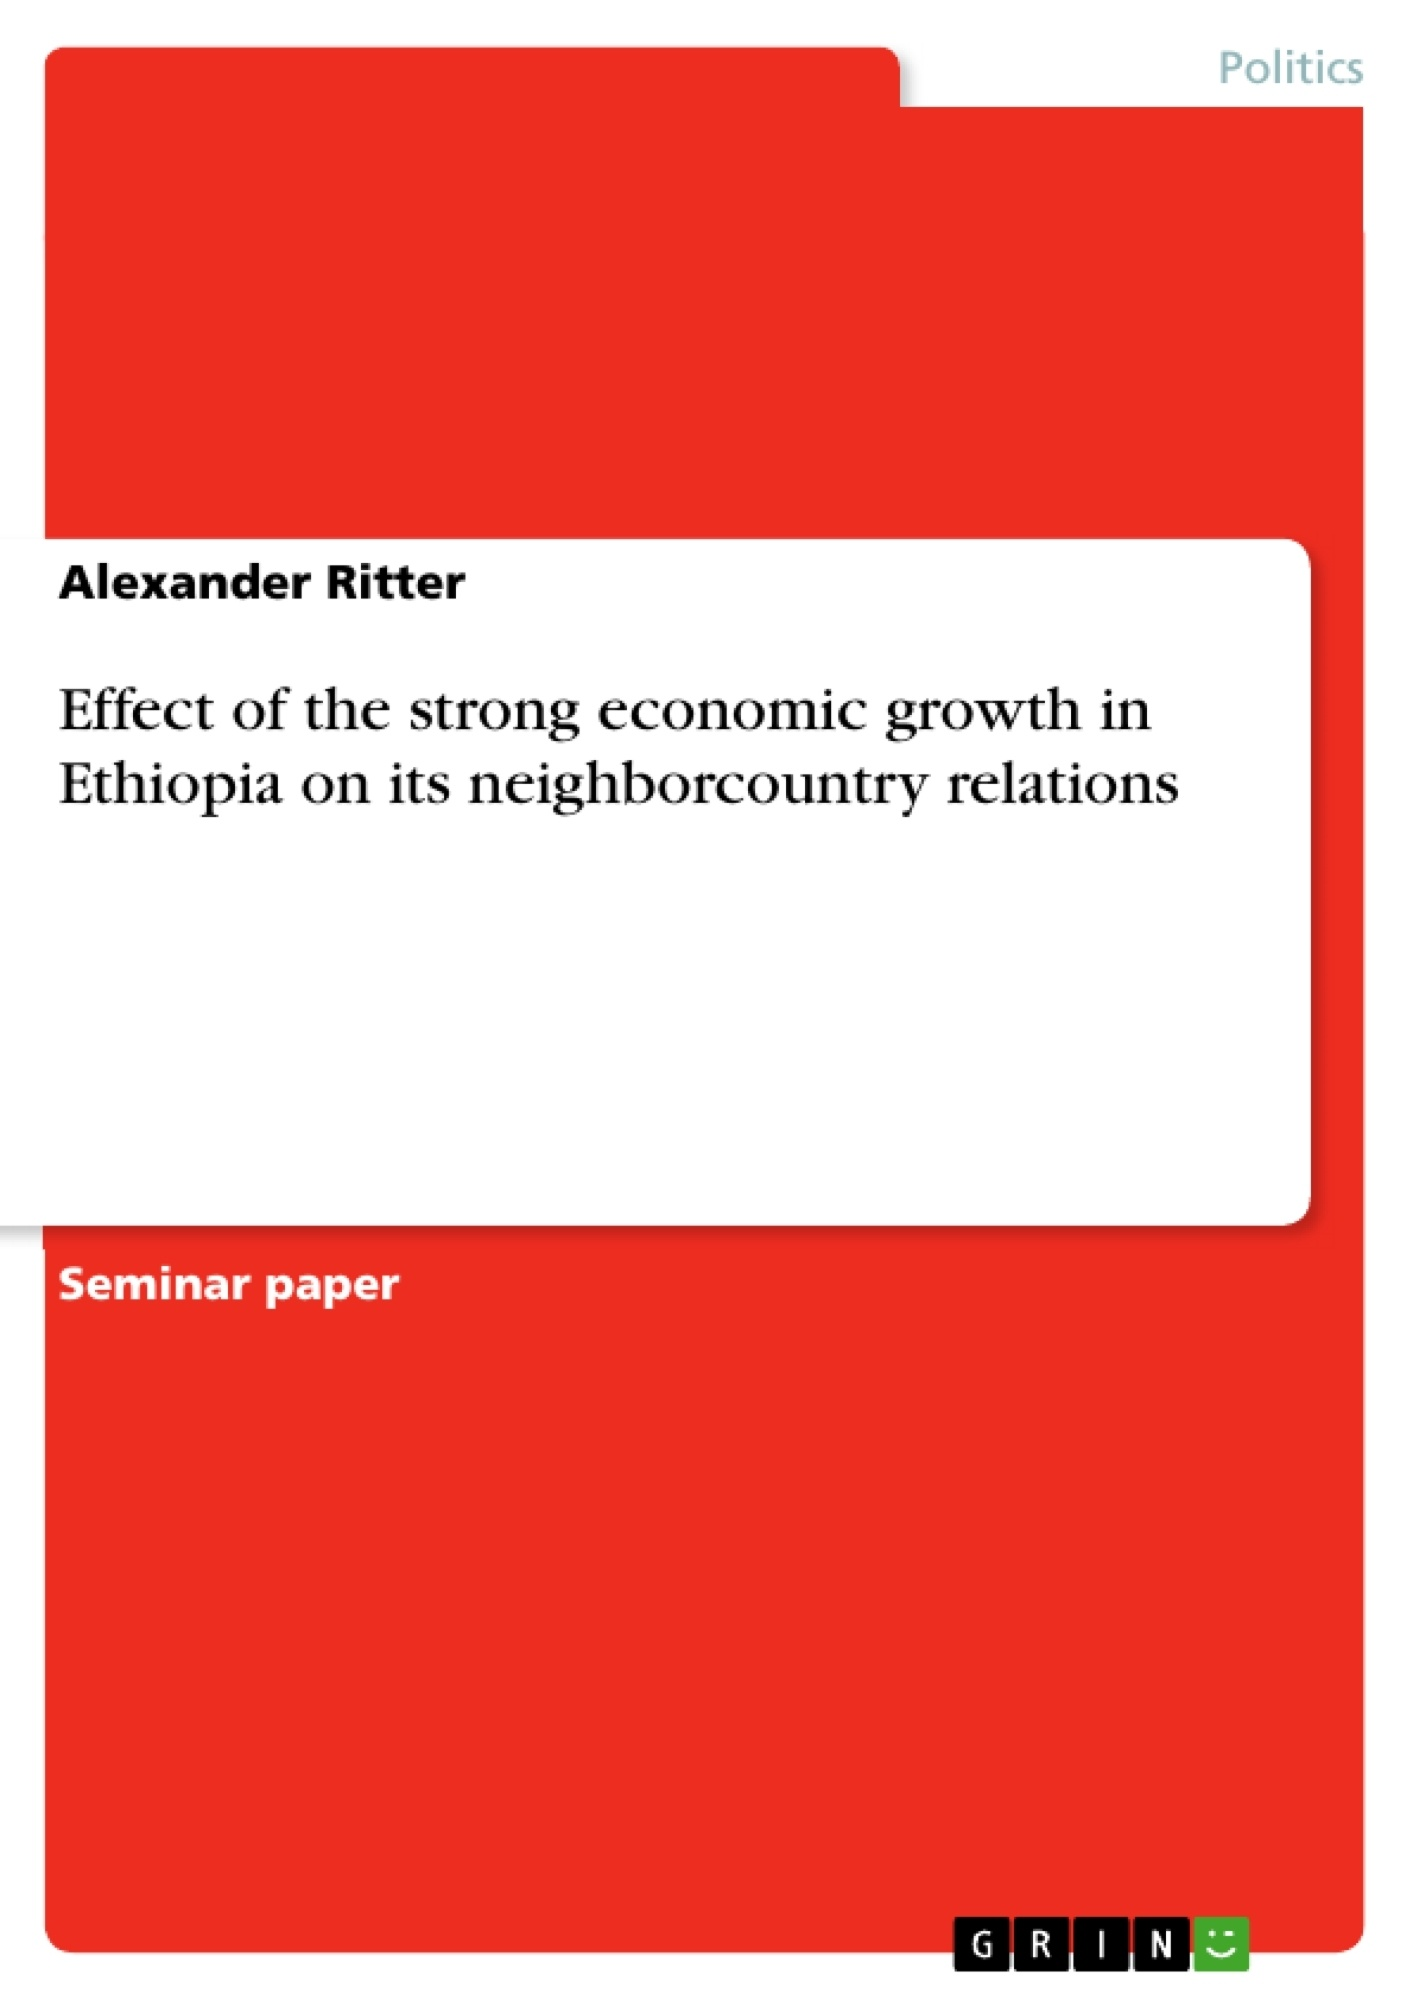 GRIN - Effect of the strong economic growth in Ethiopia on its  neighborcountry relations